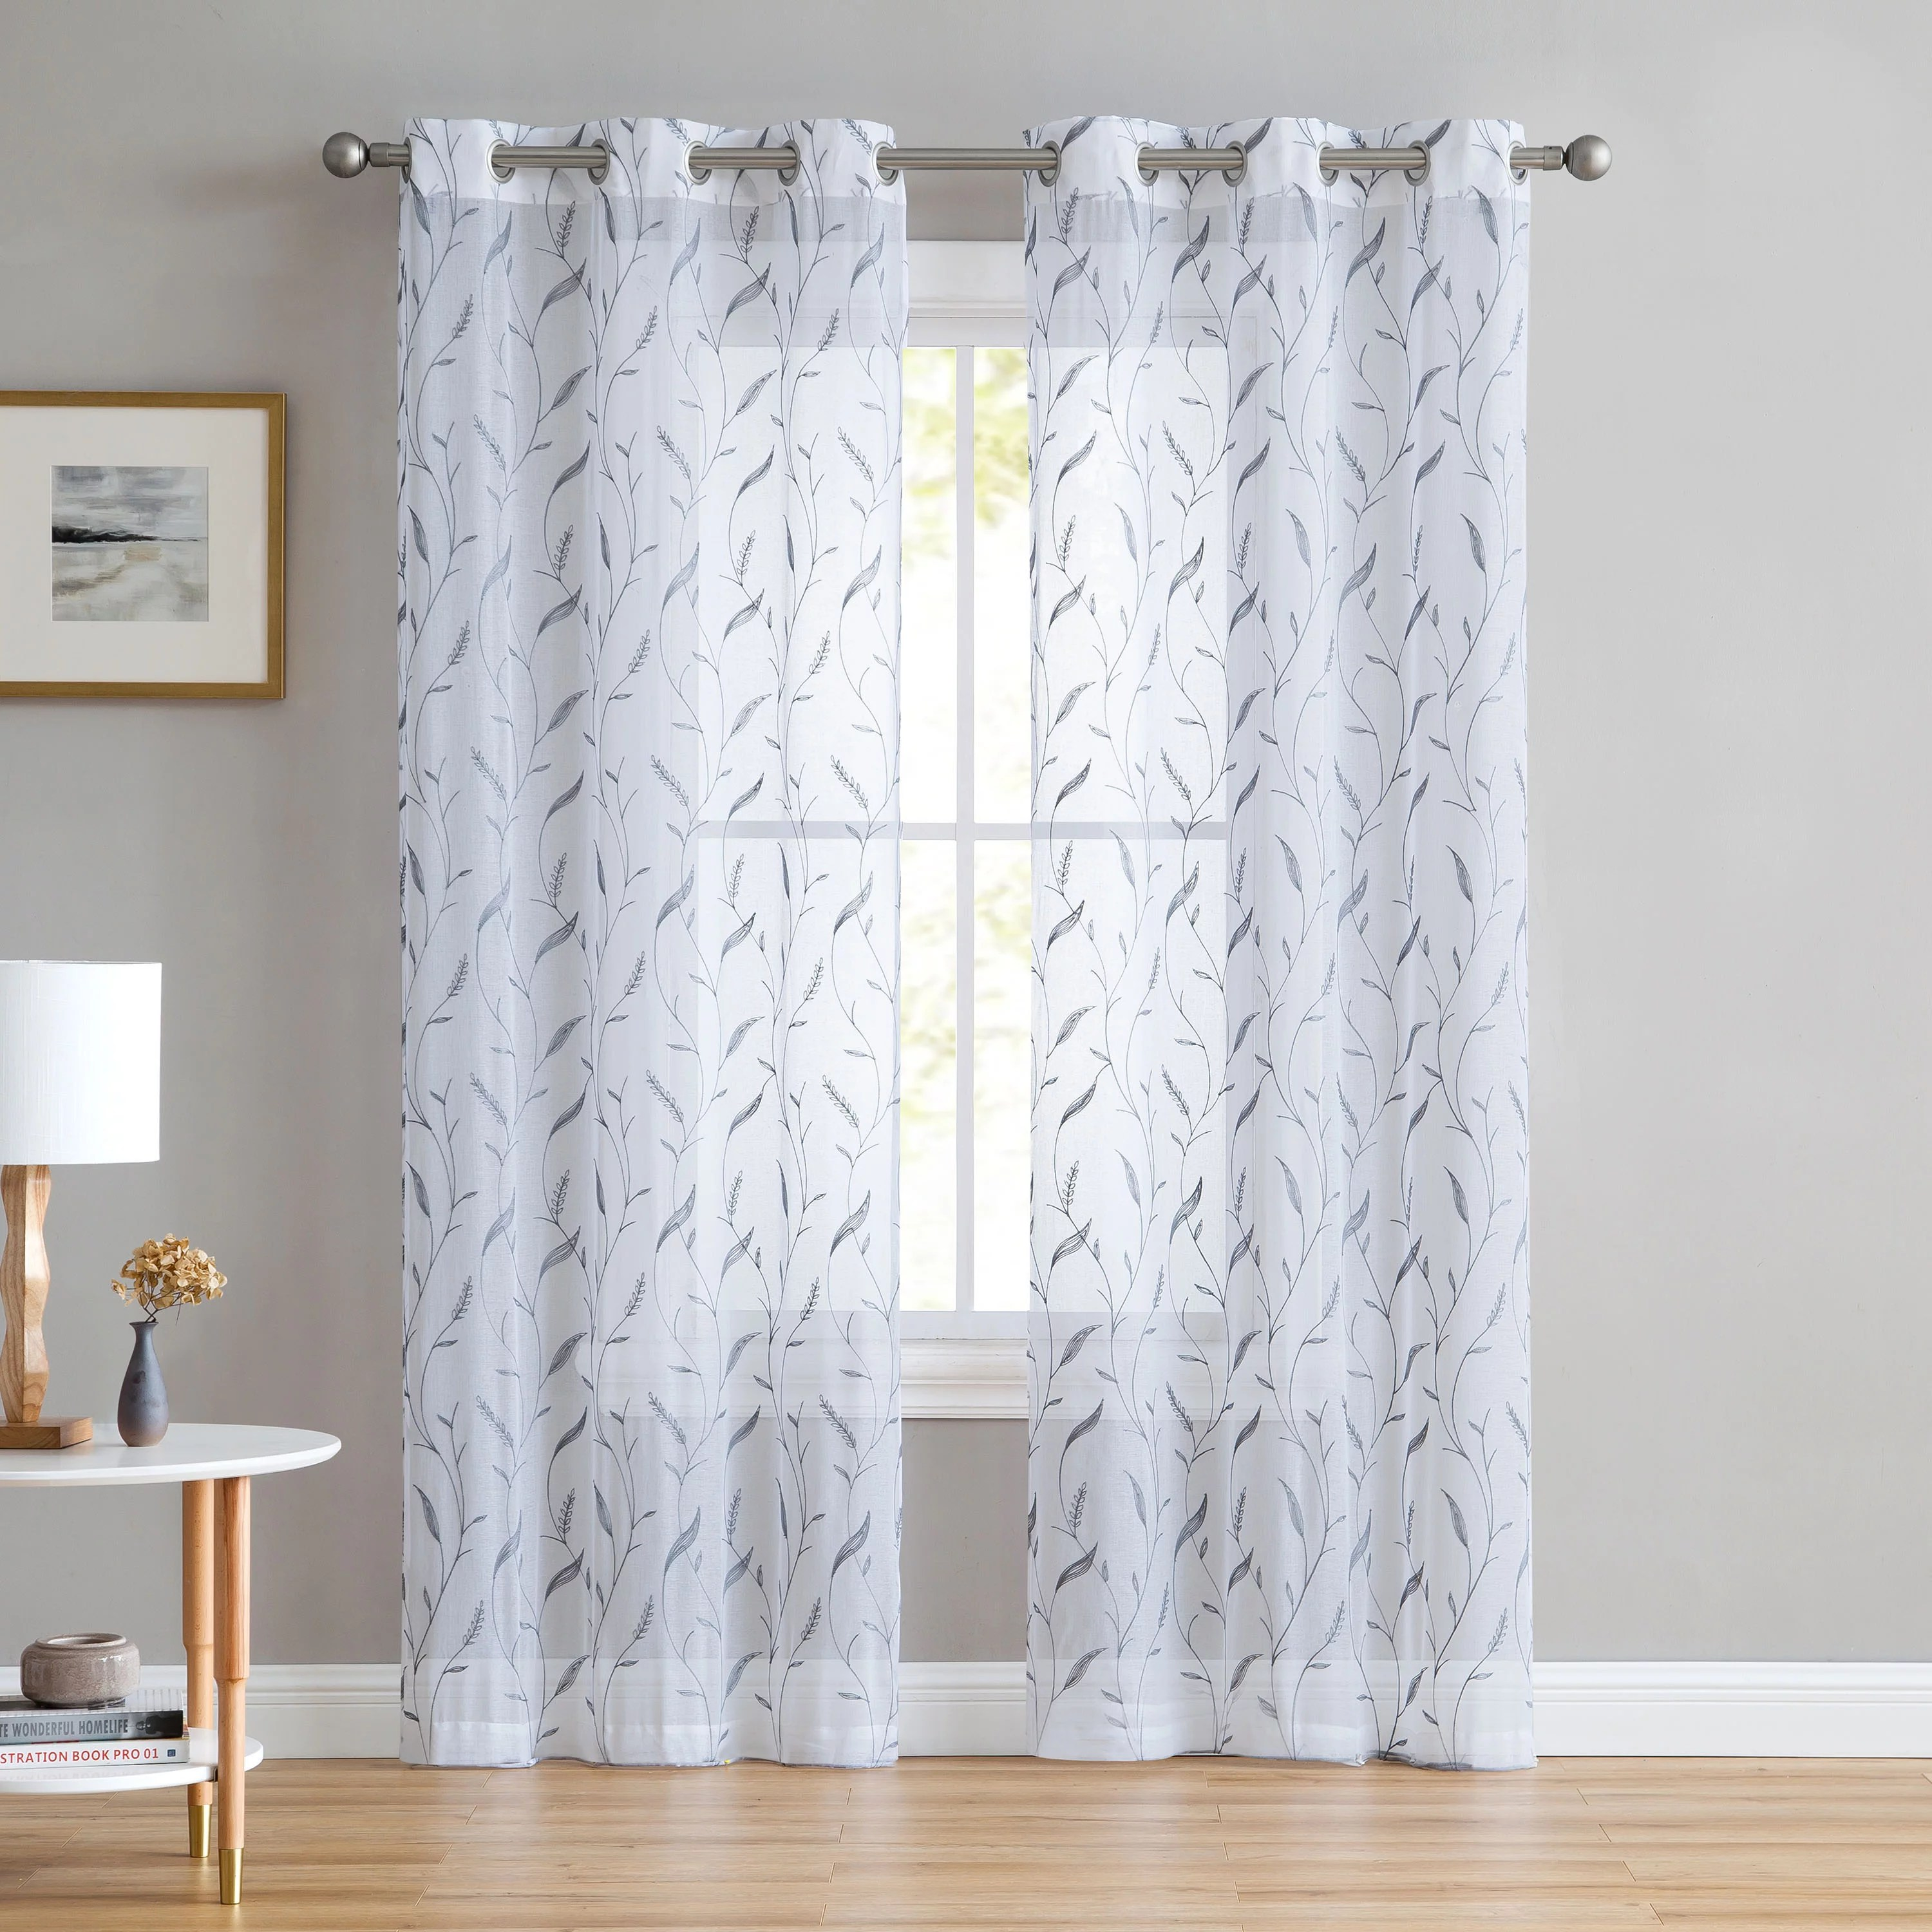 Set Of Two 2 White Sheer Window Curtains Gray